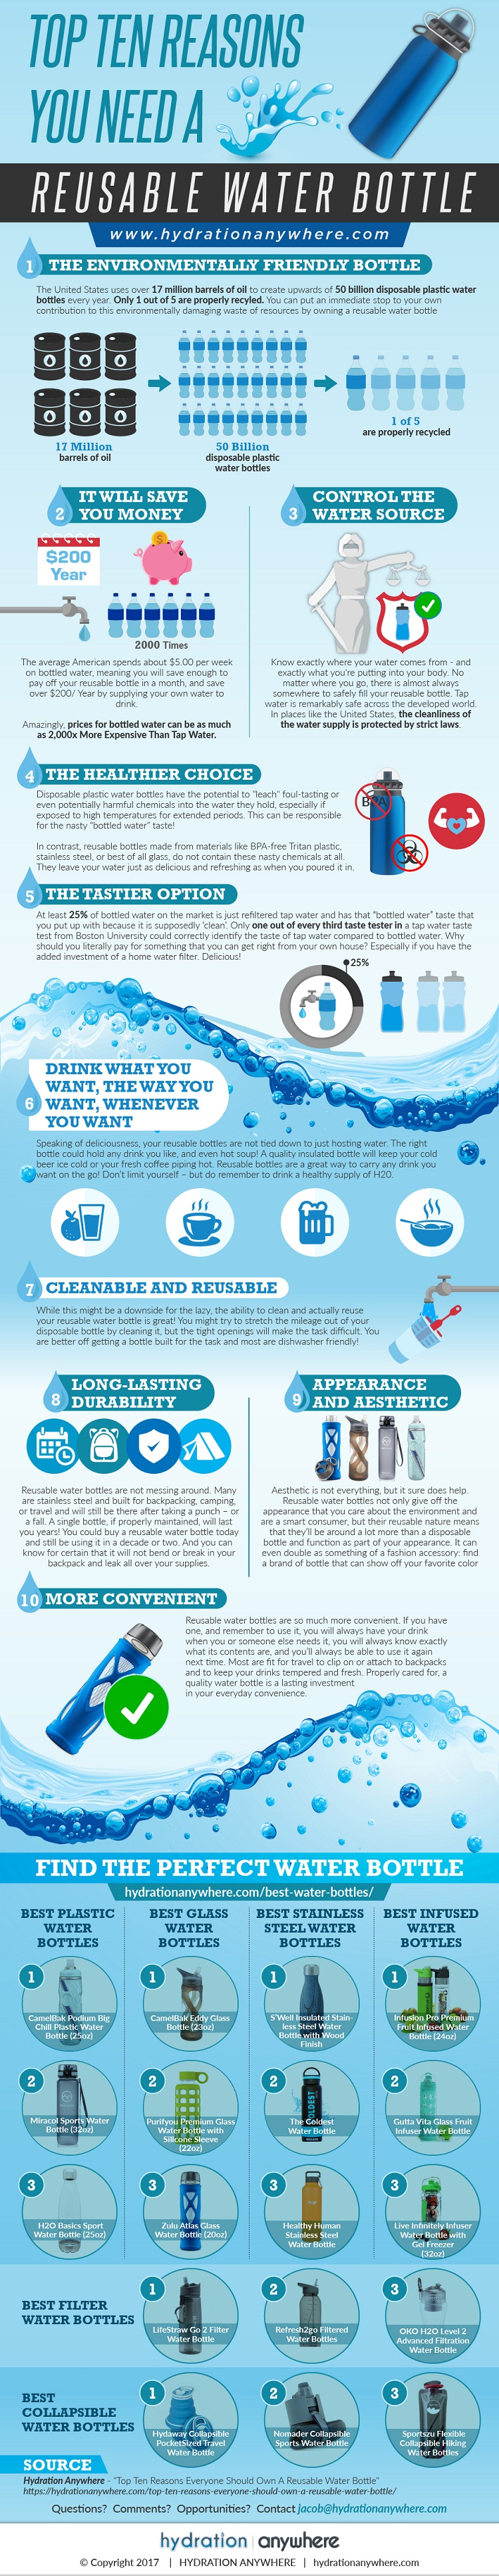 Top Ten Reasons You Need A Reusable Water Bottle Infographic FULL